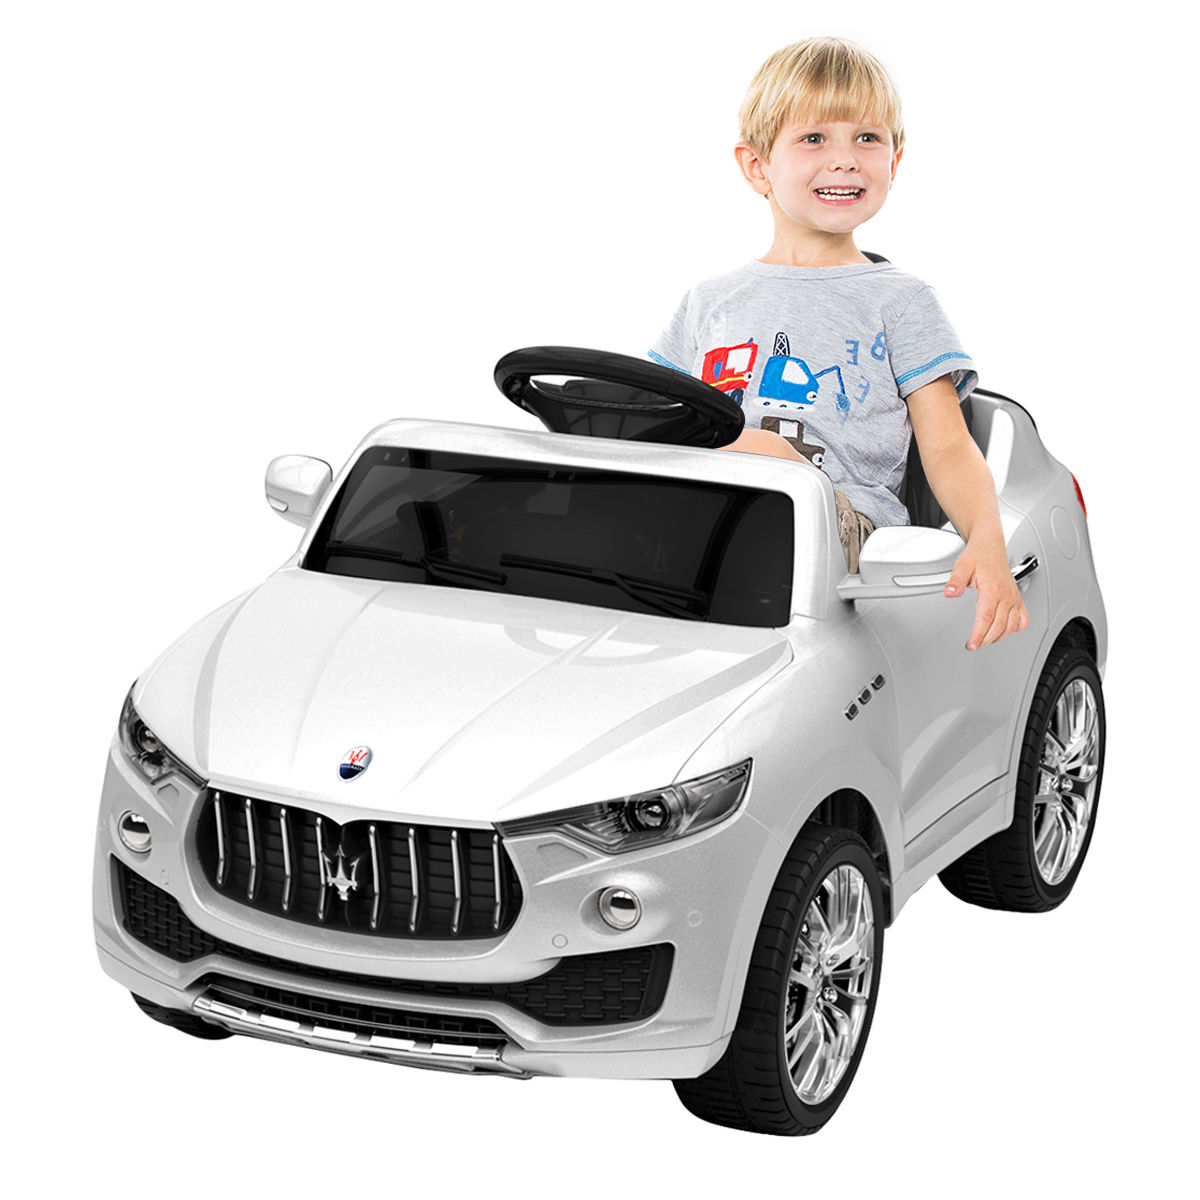 Costway 6V Licensed Maserati Kids Ride On Car RC Remote Control Opening Doors MP3 Swing... by Costway